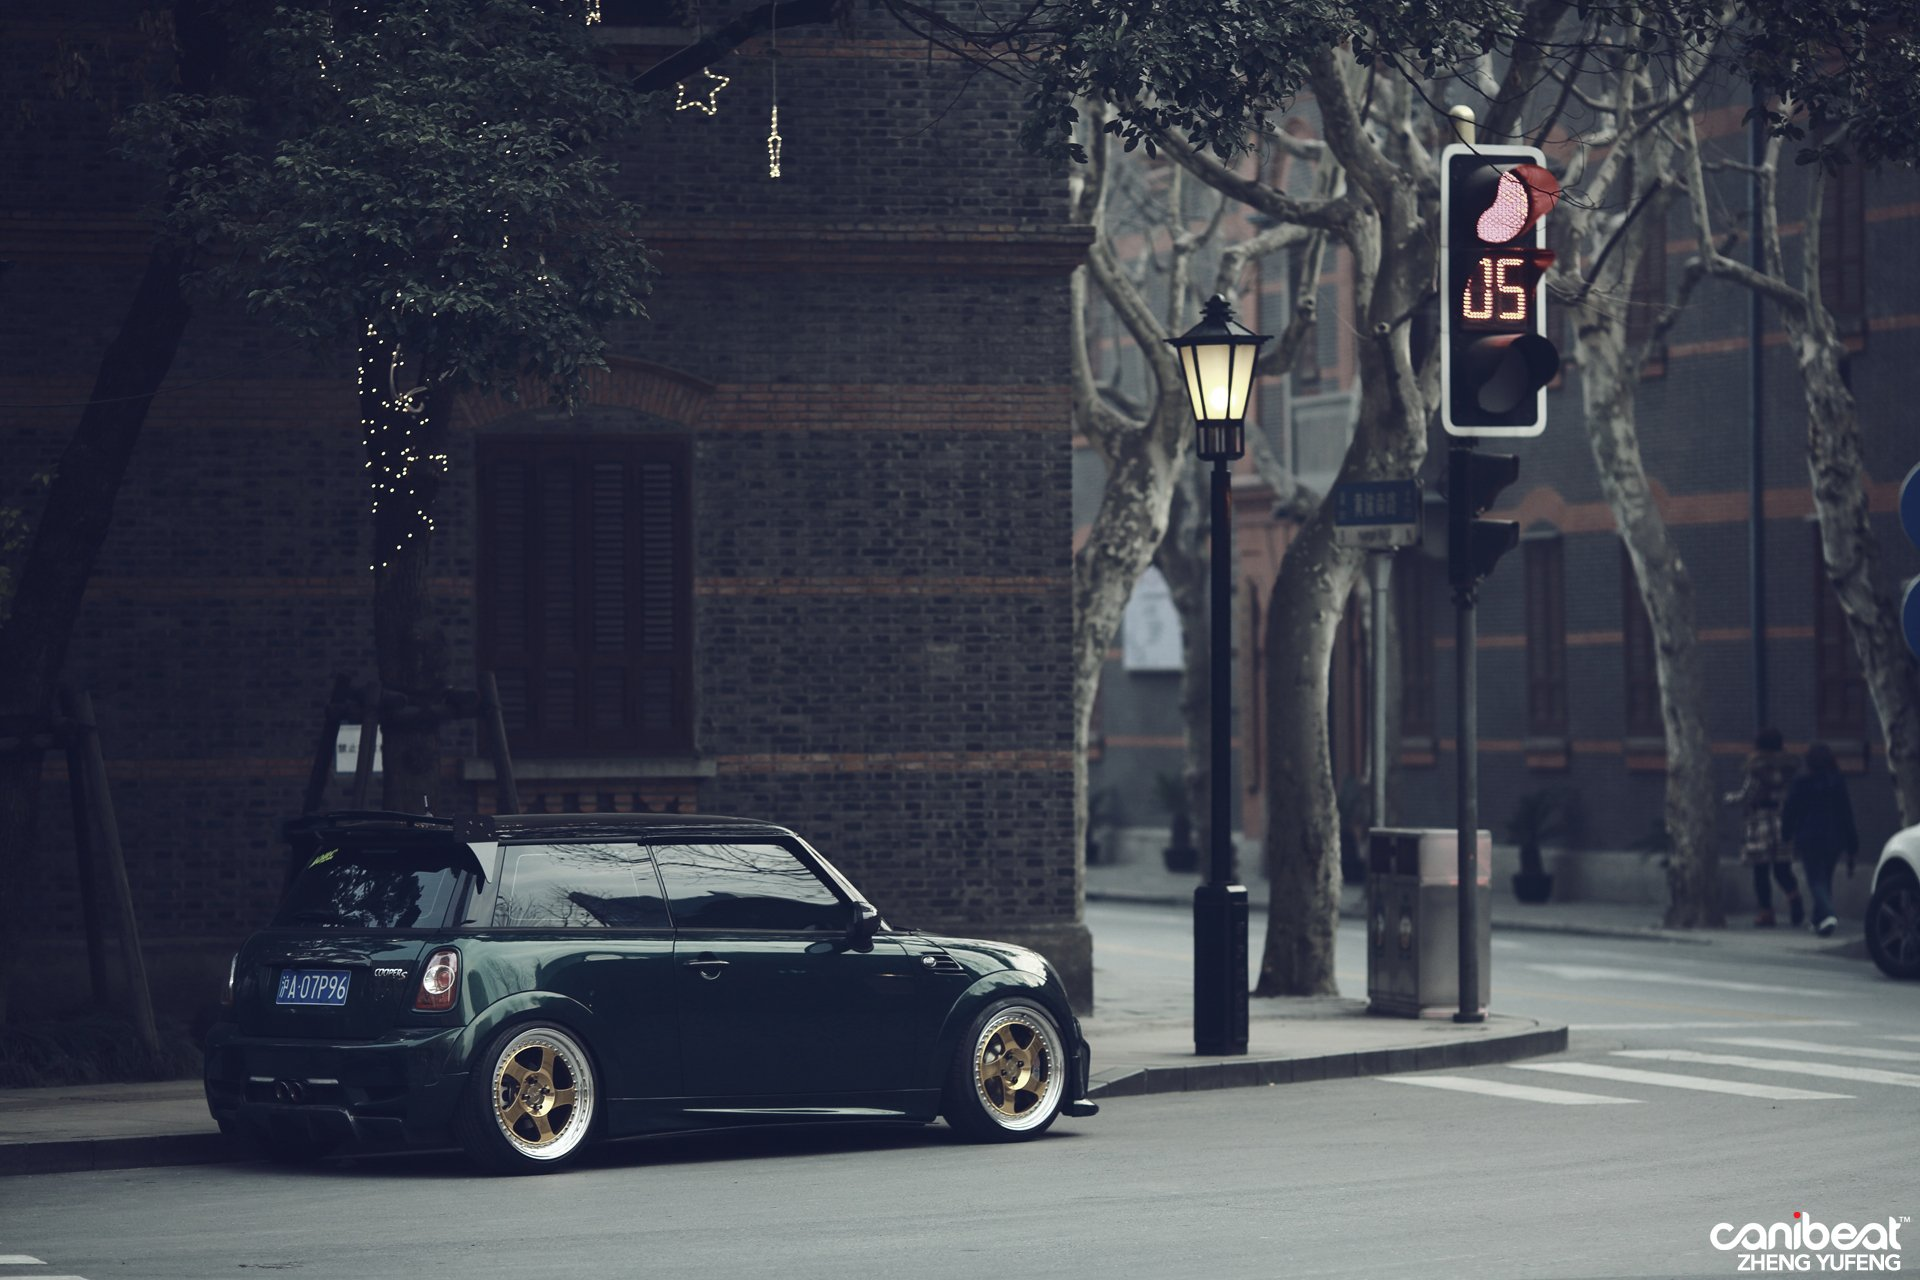 mini cooper s tuning custom wallpaper 1920x1280 734112. Black Bedroom Furniture Sets. Home Design Ideas